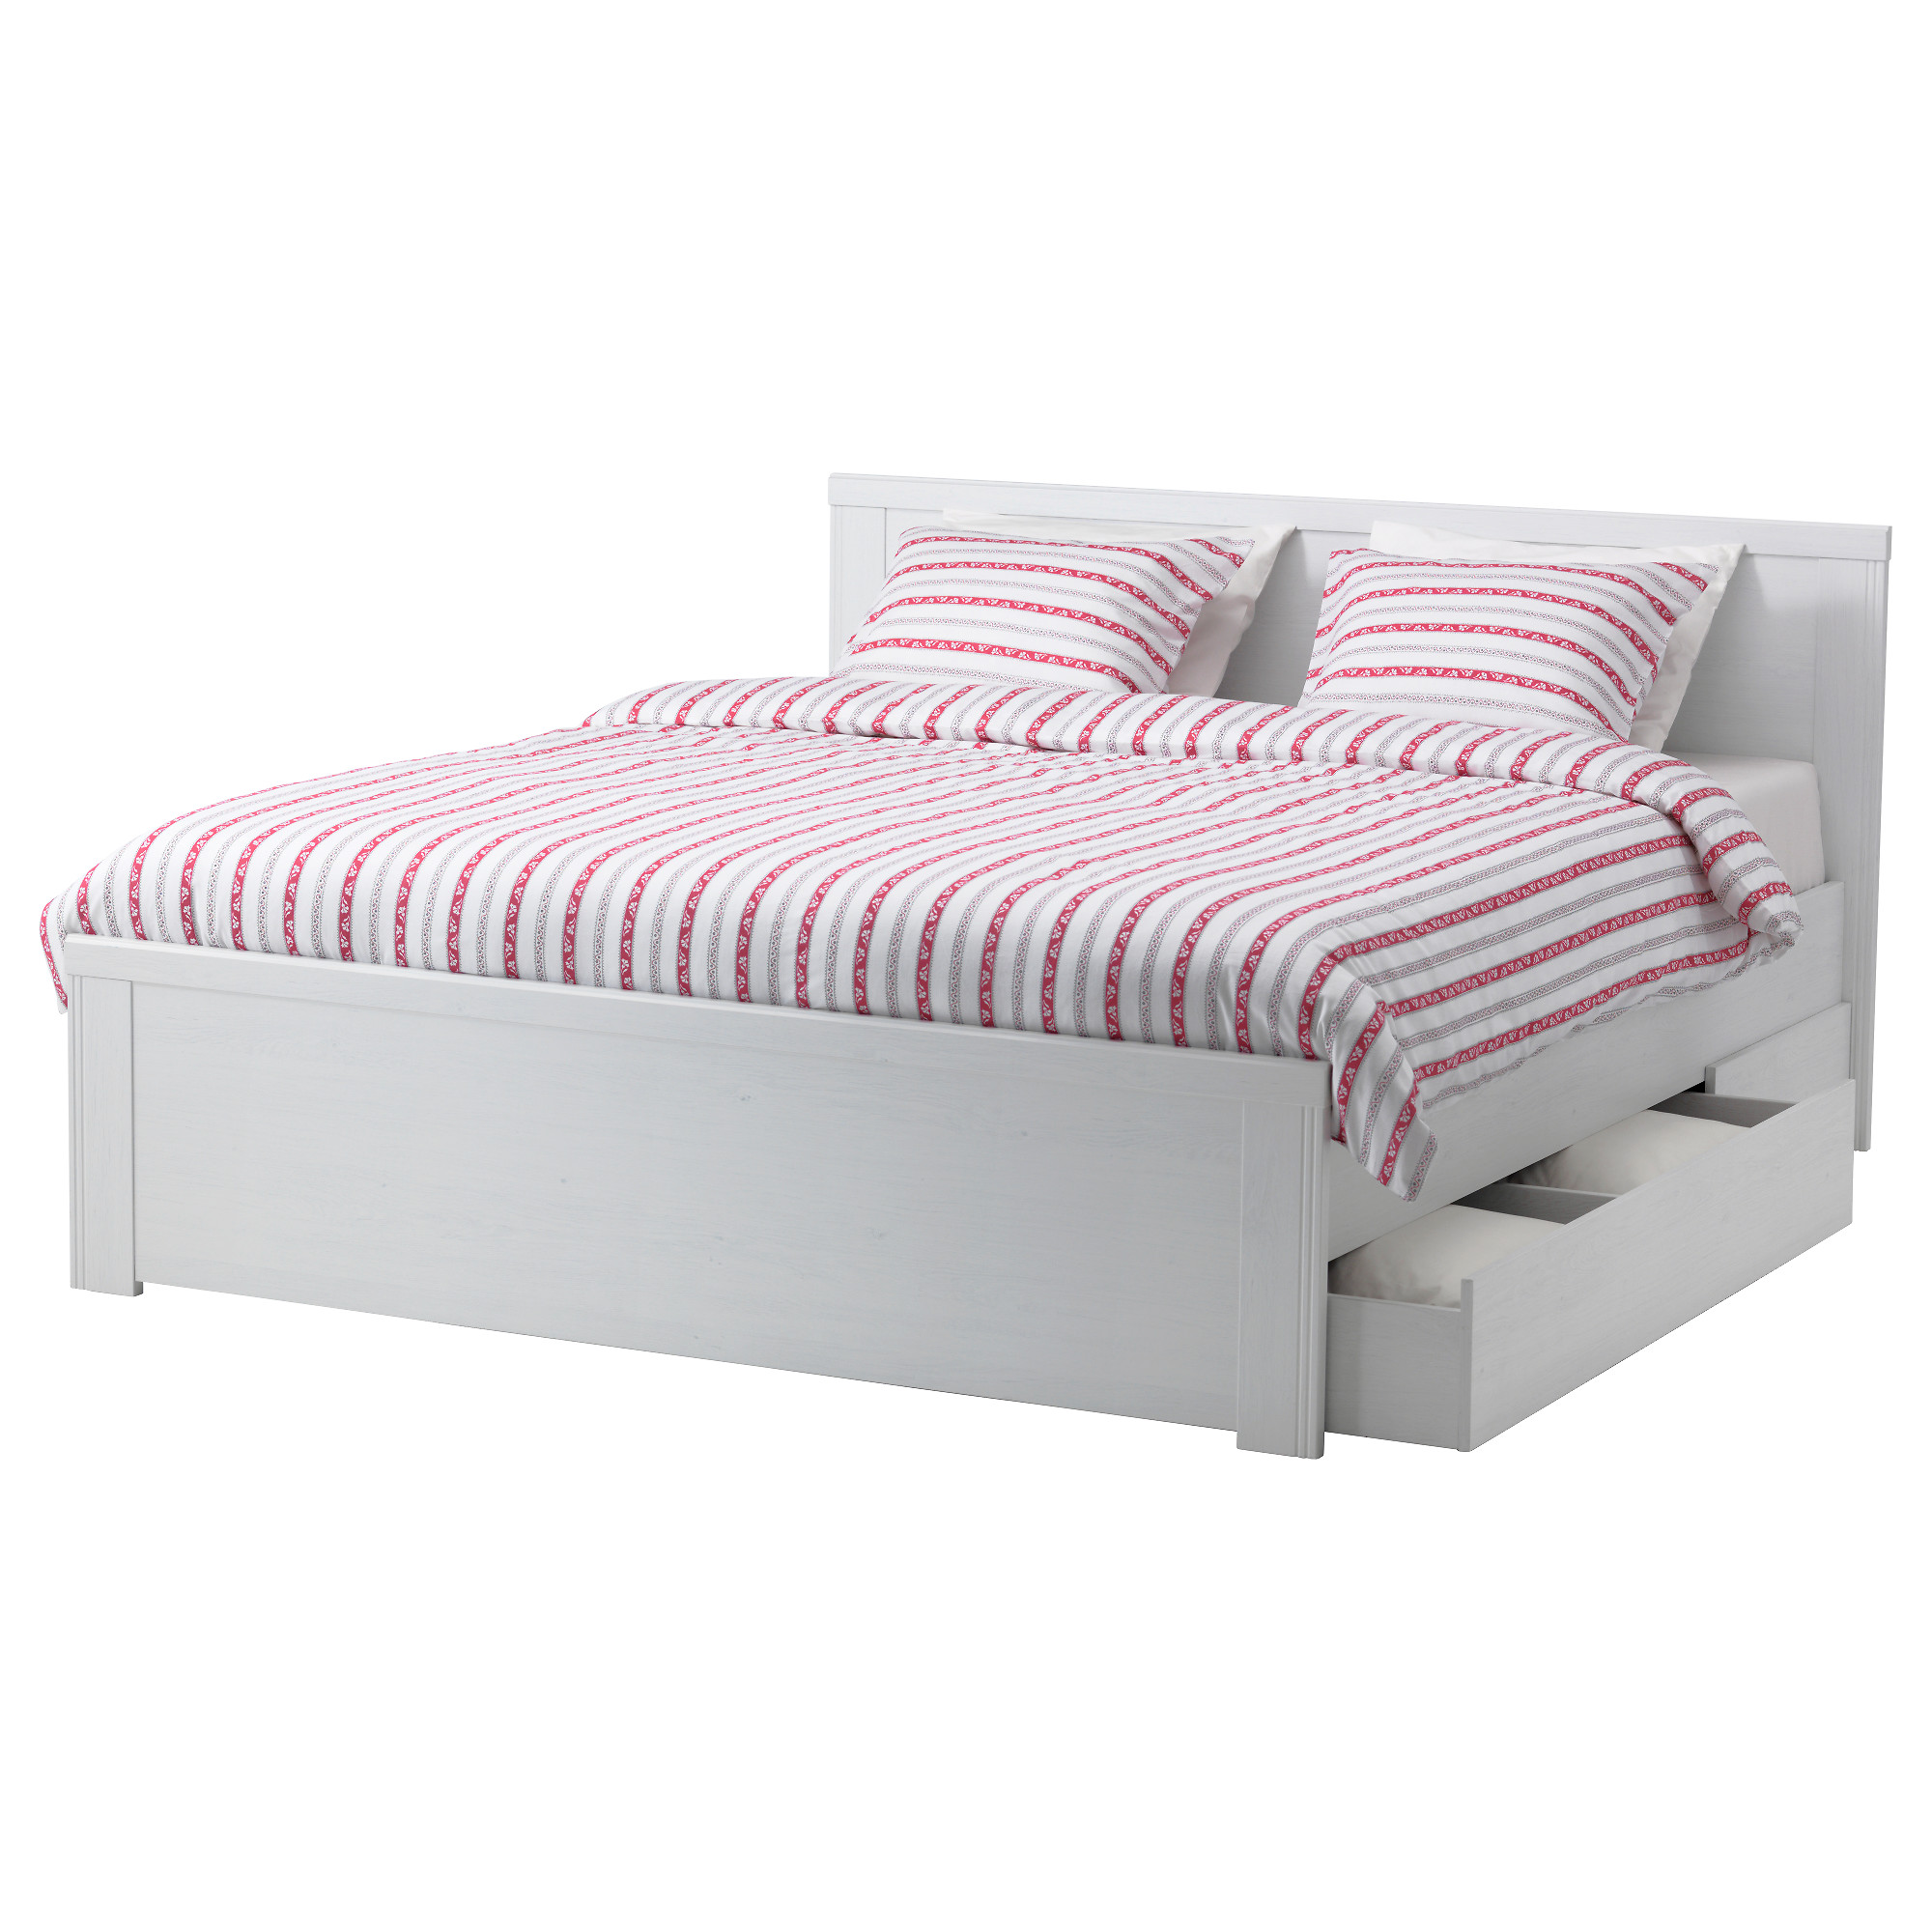 Tweepersoonsbed Frame Ikea Bed Frame With Drawers Homesfeed